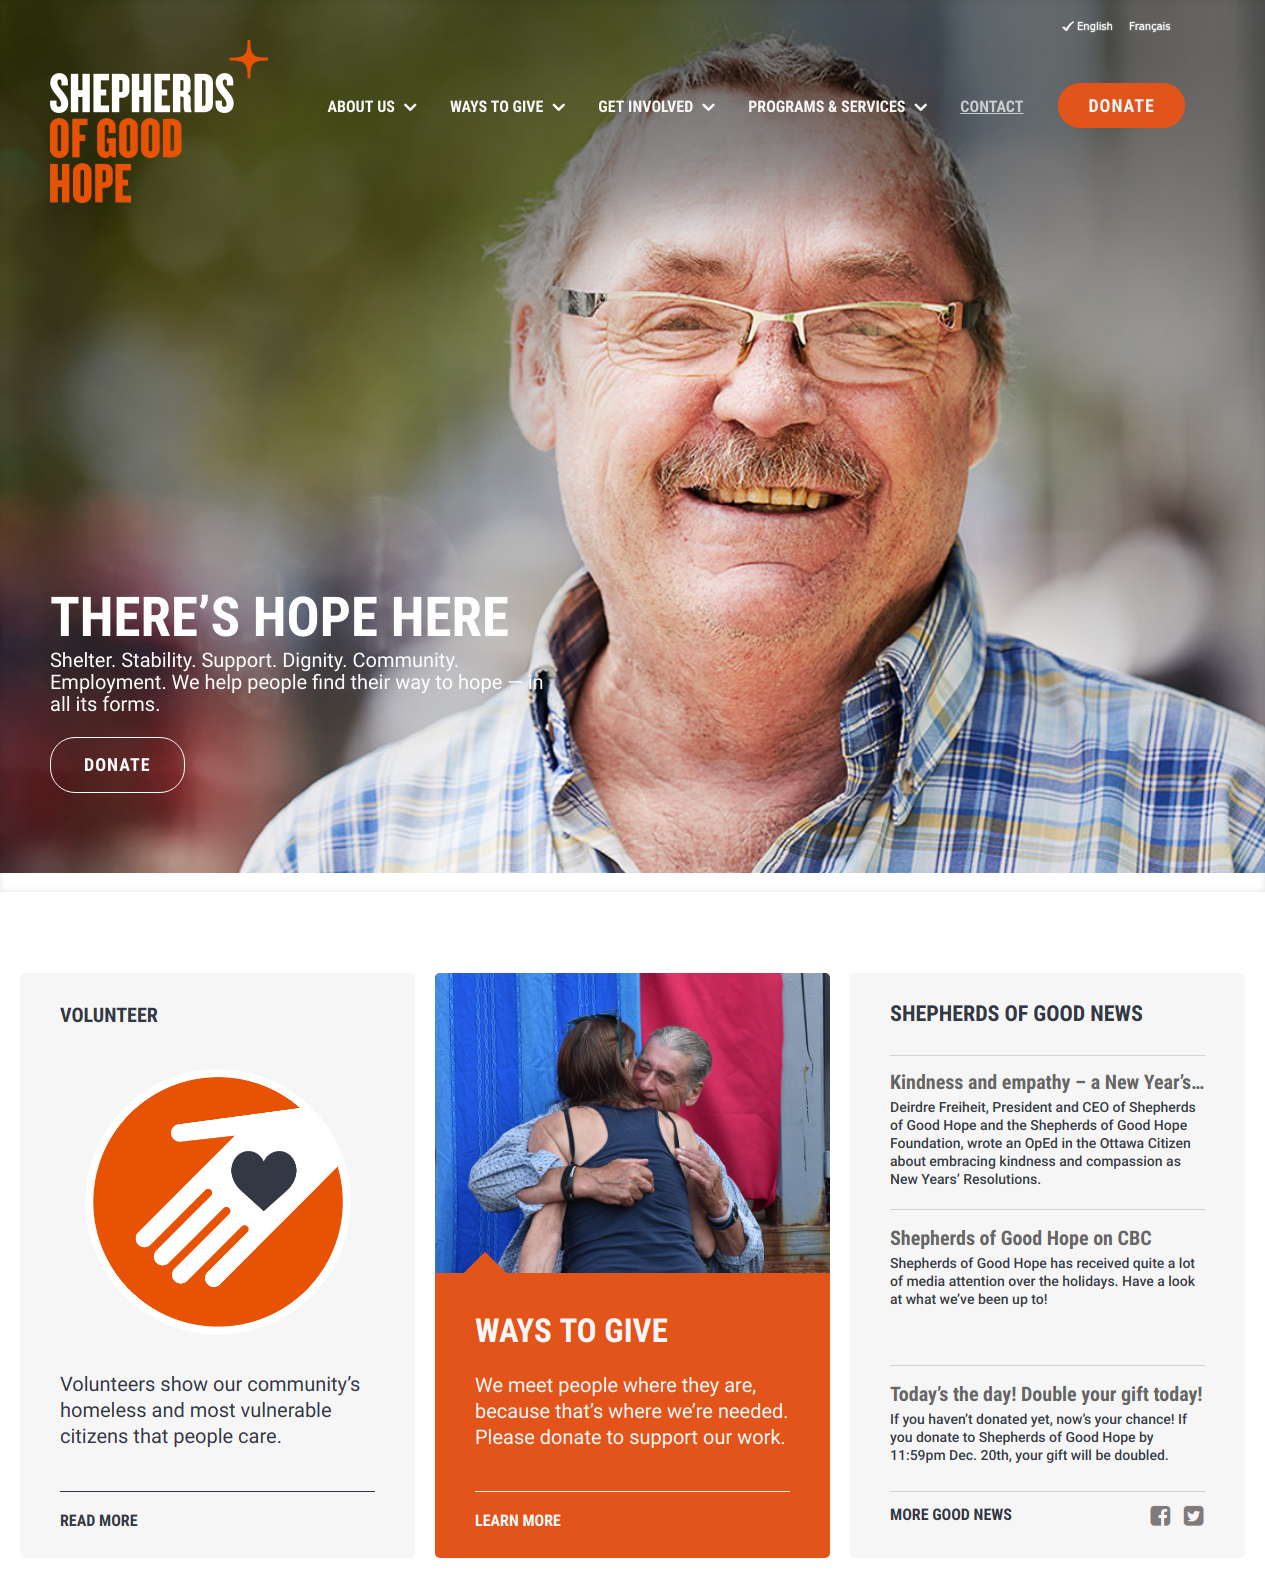 Shepherds of Good Hope Home Page (https://www.sghottawa.ca)